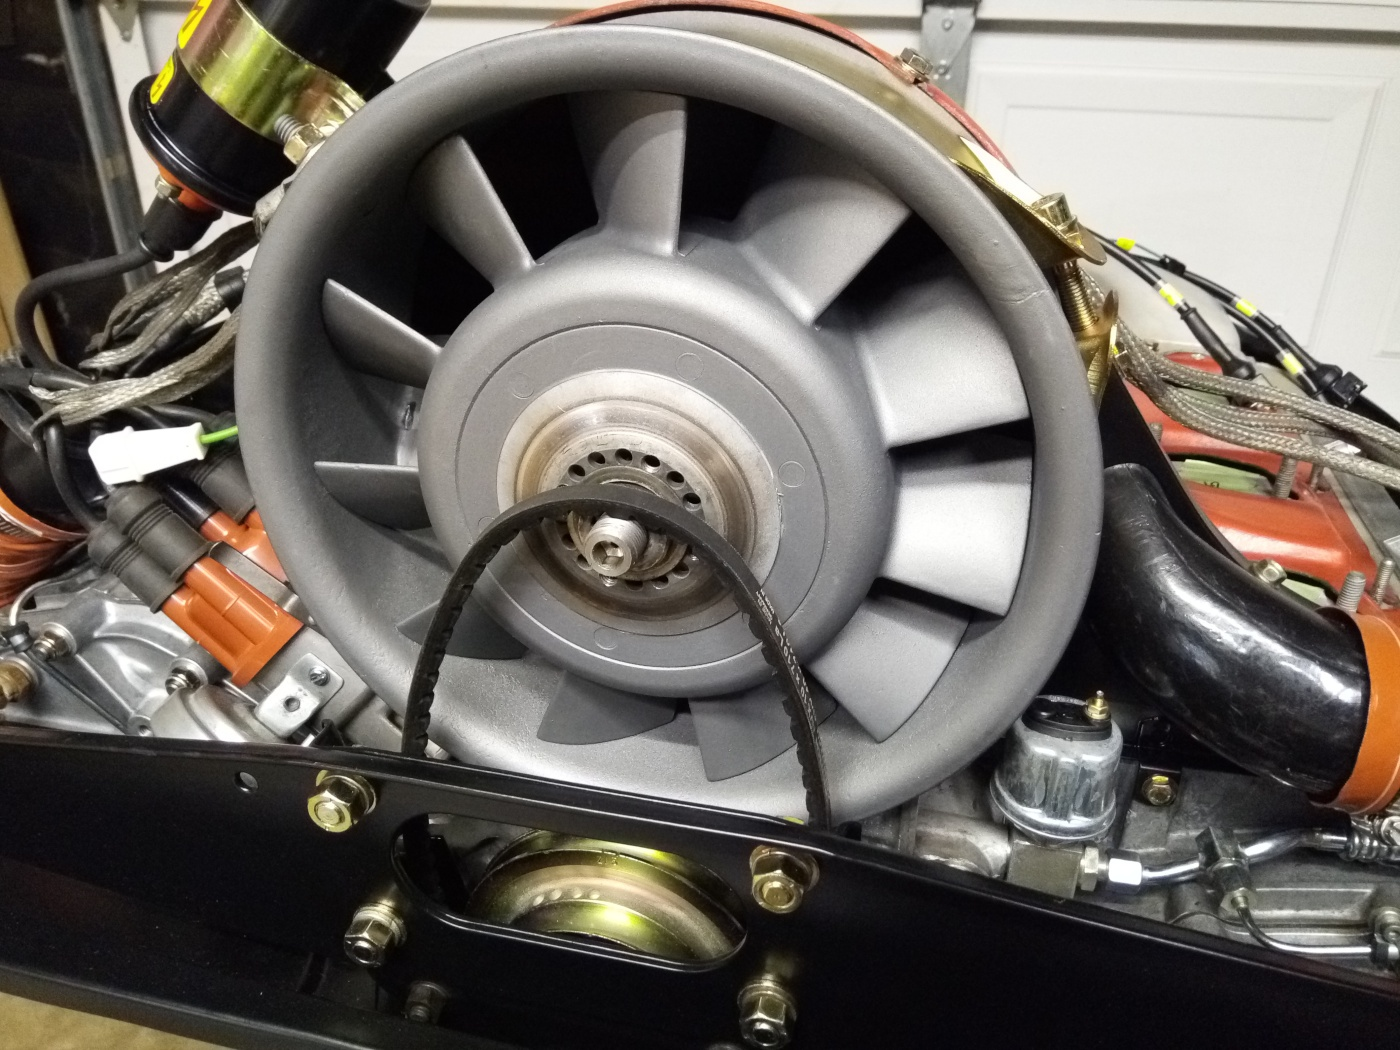 Air-cooled Porsche 911 fan belt loosened